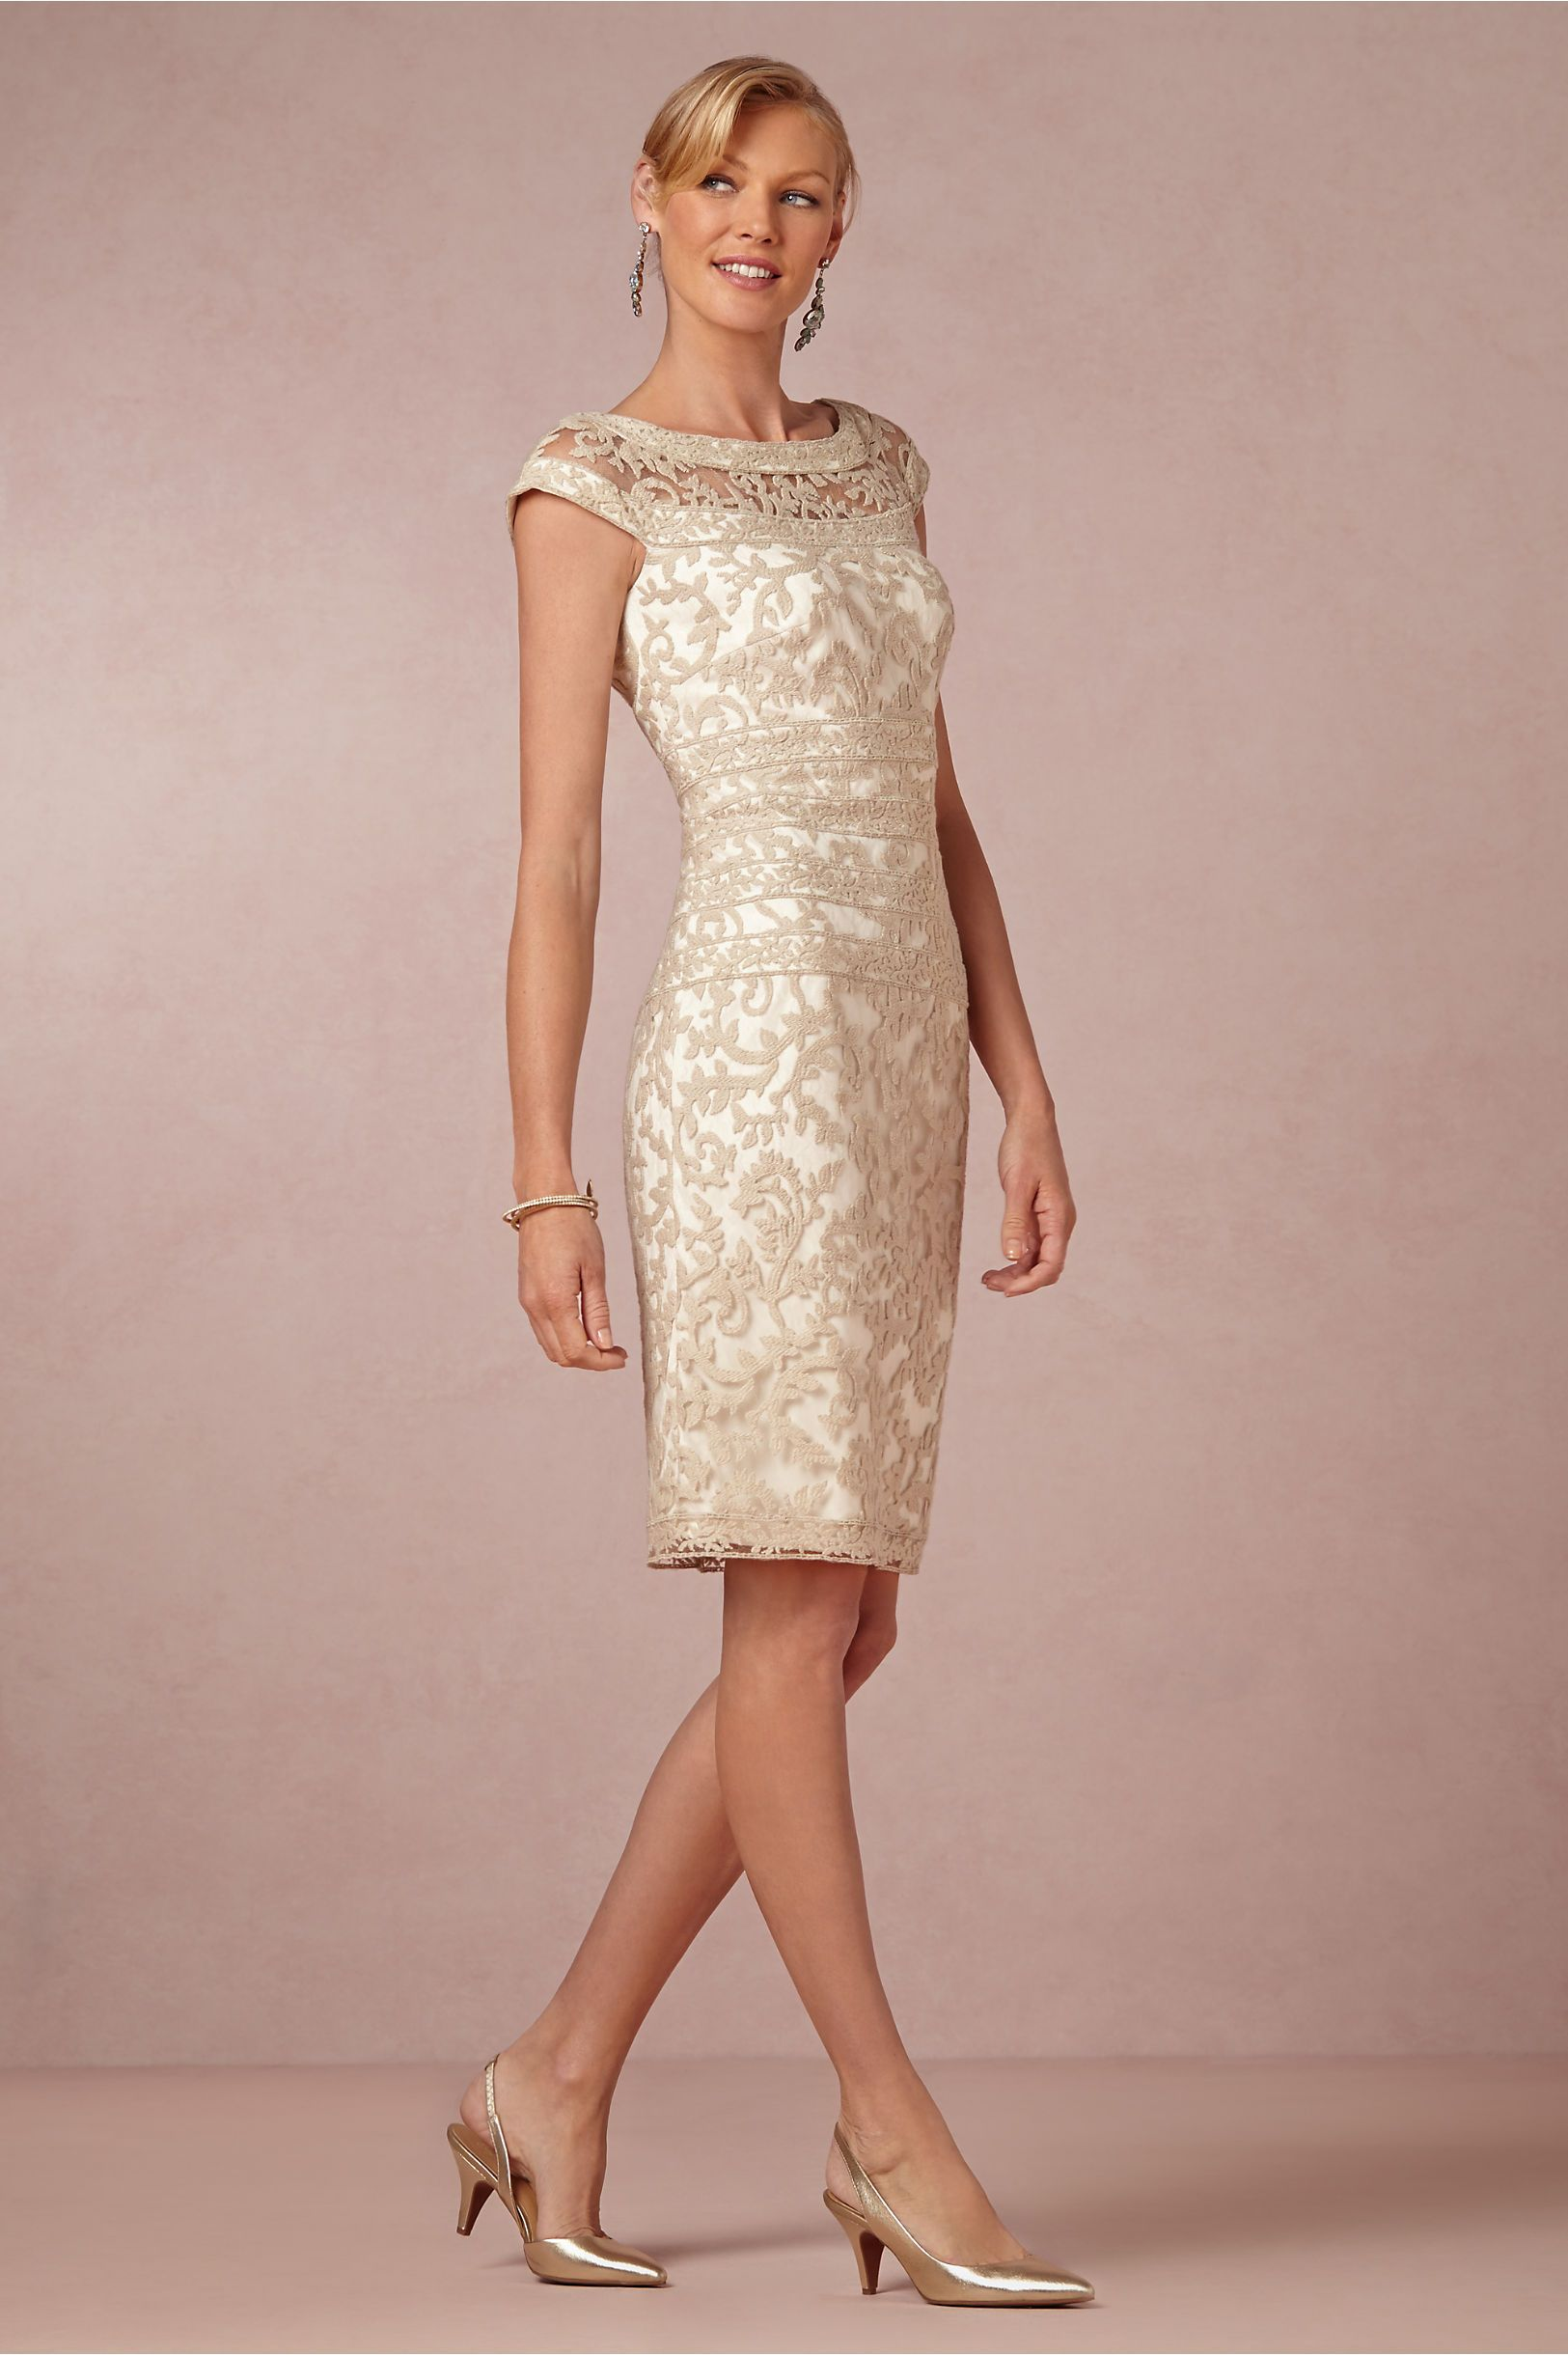 Cream and Beige Lace Dress | recepción | Pinterest | Vestiditos ...